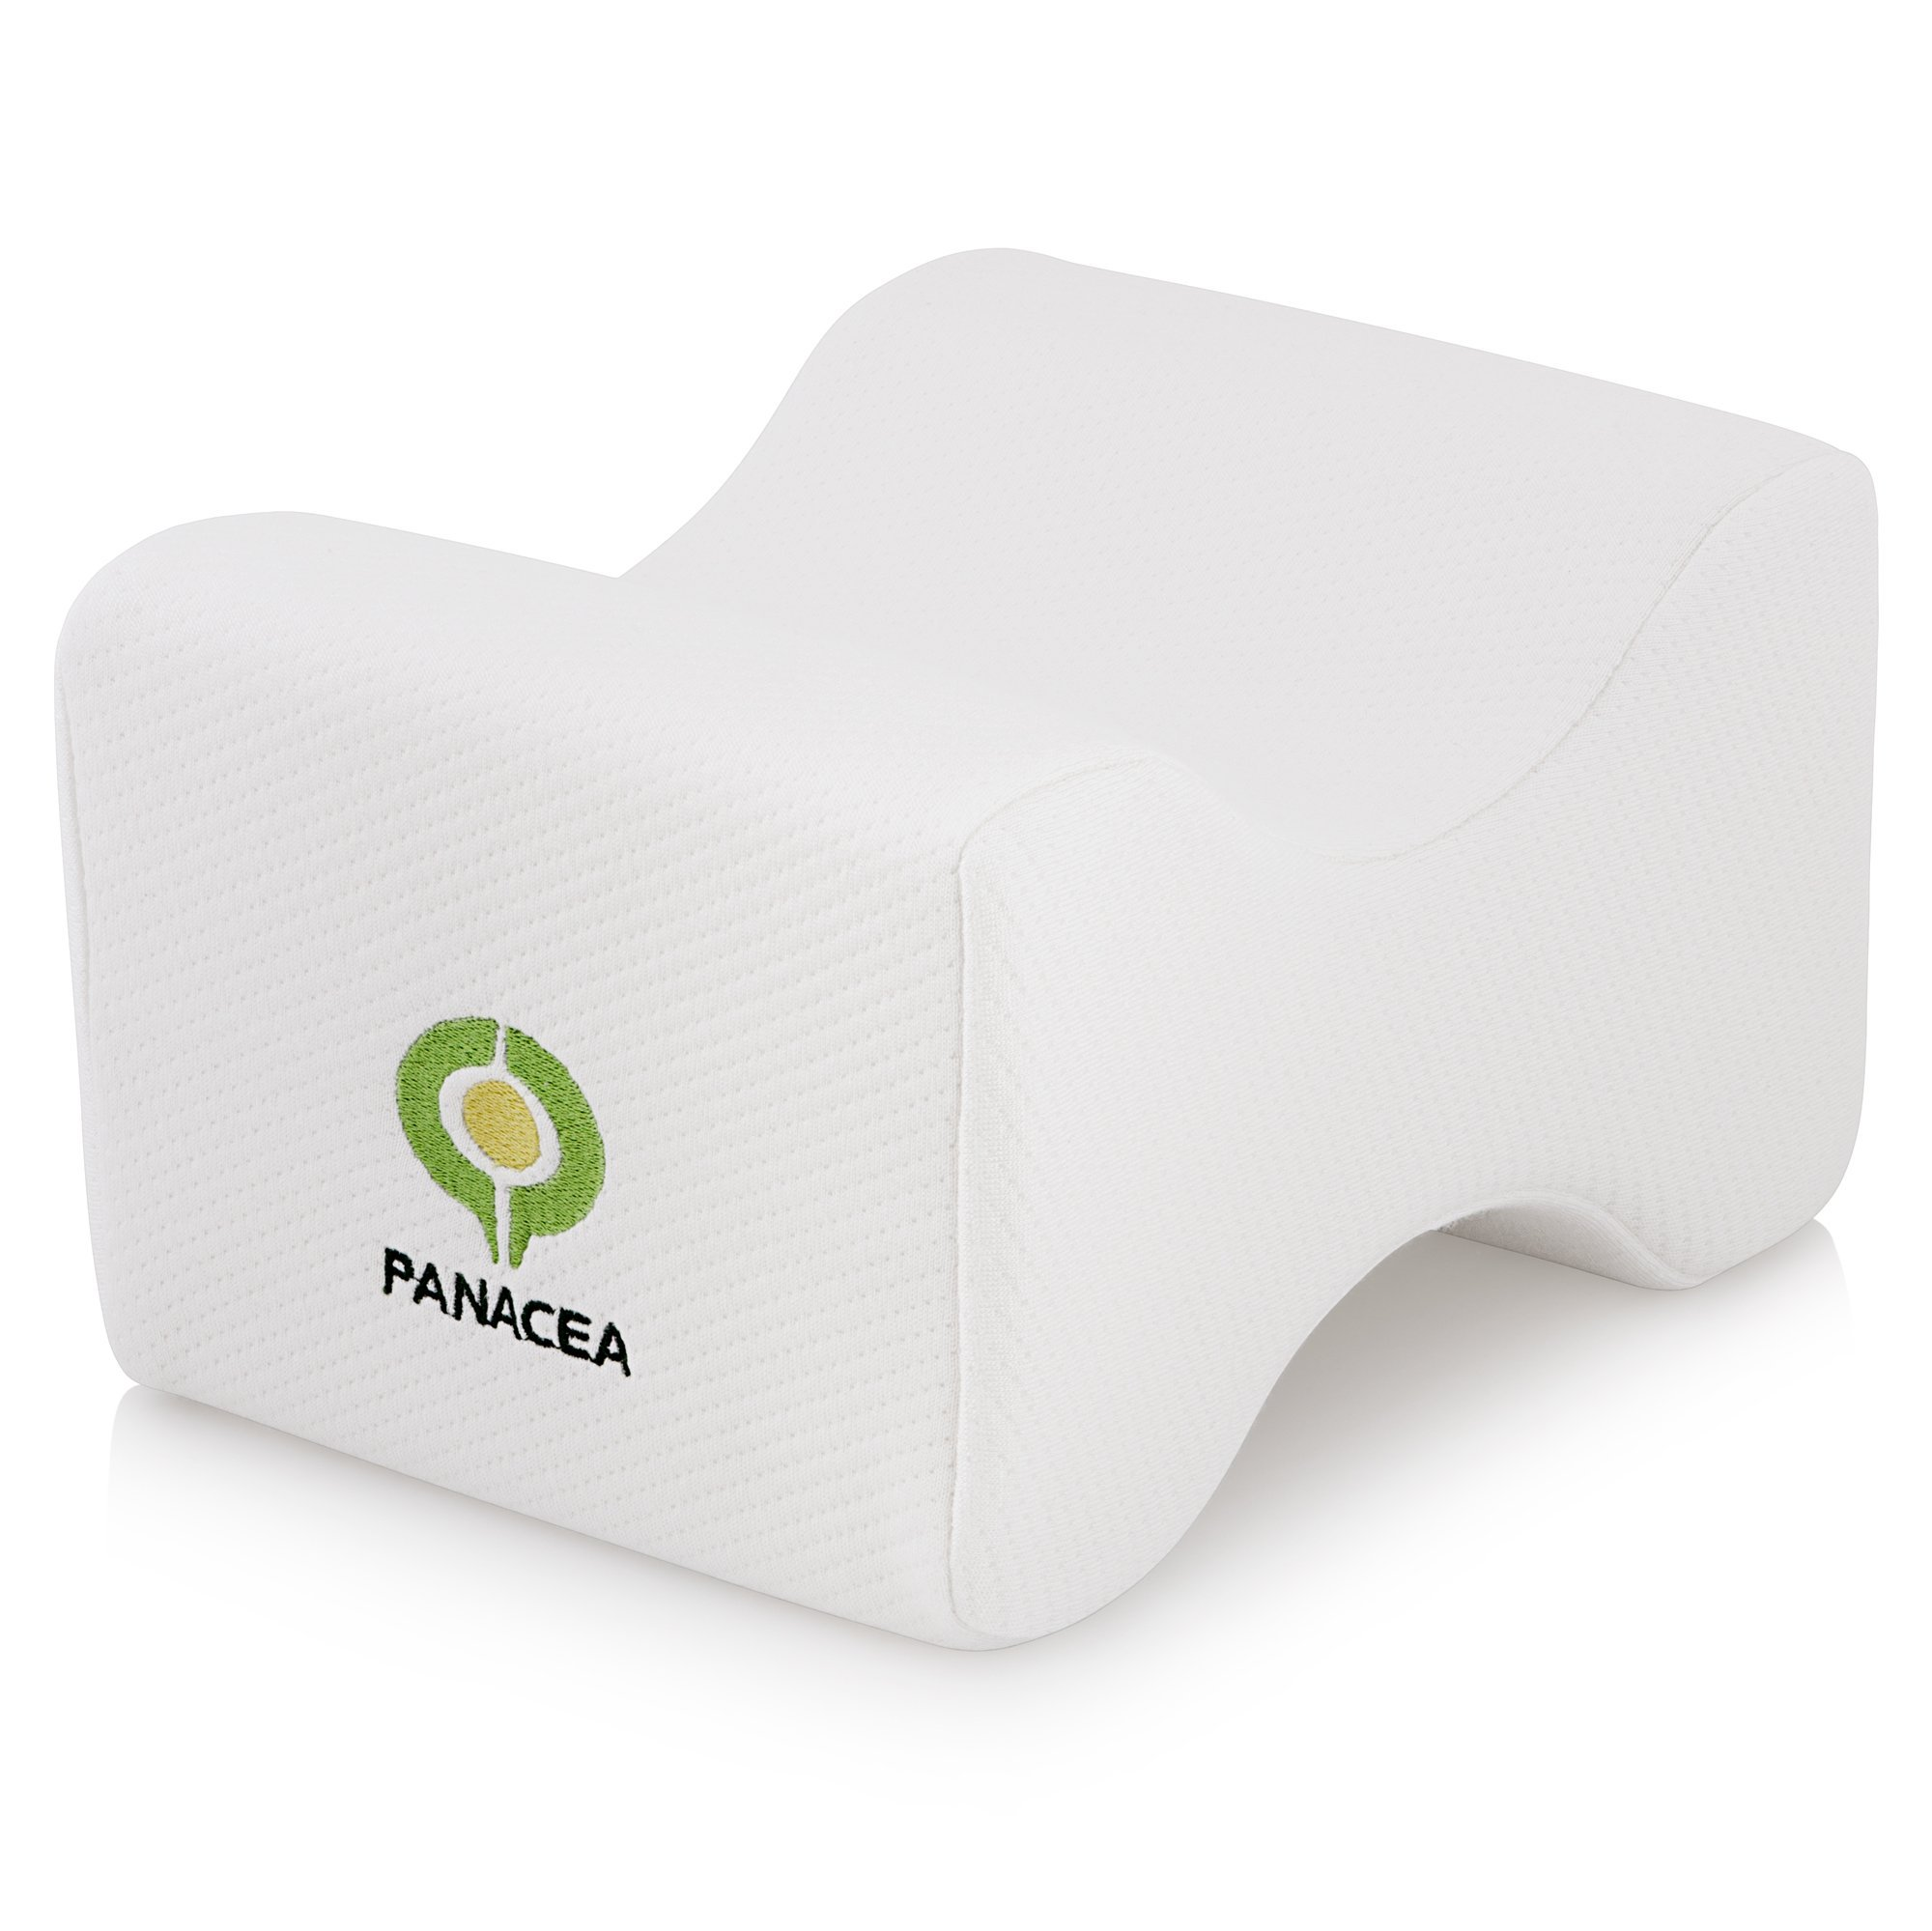 Panacea Wellbeing Memory Foam Knee Pillow with Breathable OEKO-TEX Cover for Side Sleepers - Provides Relief for Sciatic Nerve, Back, Leg and Hip Pain